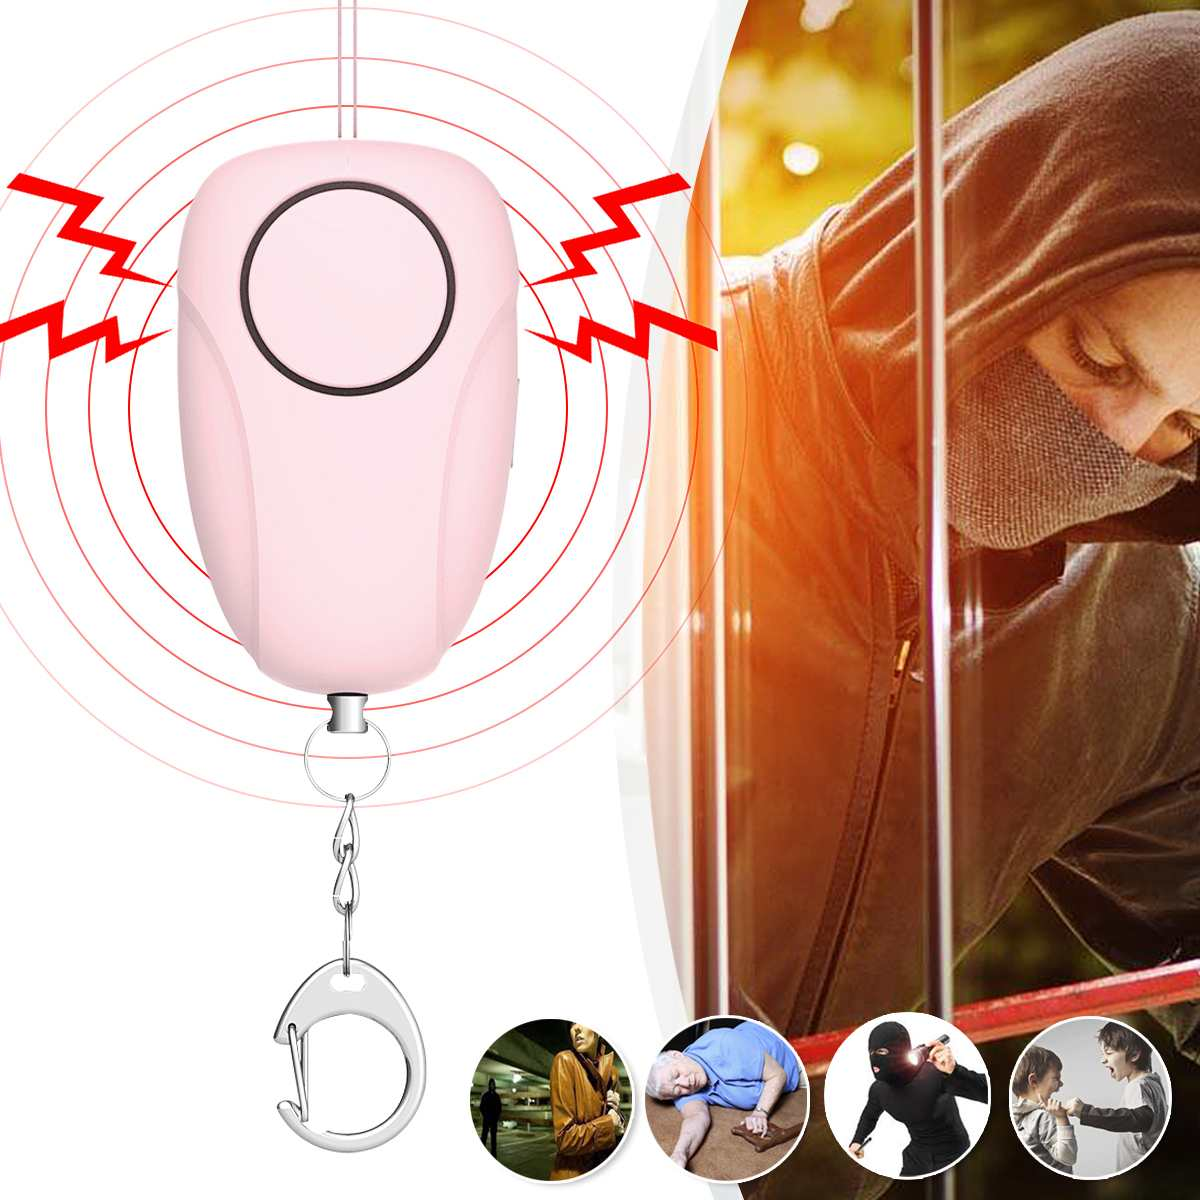 Self Defense Personal Safety Alarm Security Wolf Auto Alarm Anti Rape Whistle 120dB Sound Loud Keychain Protection